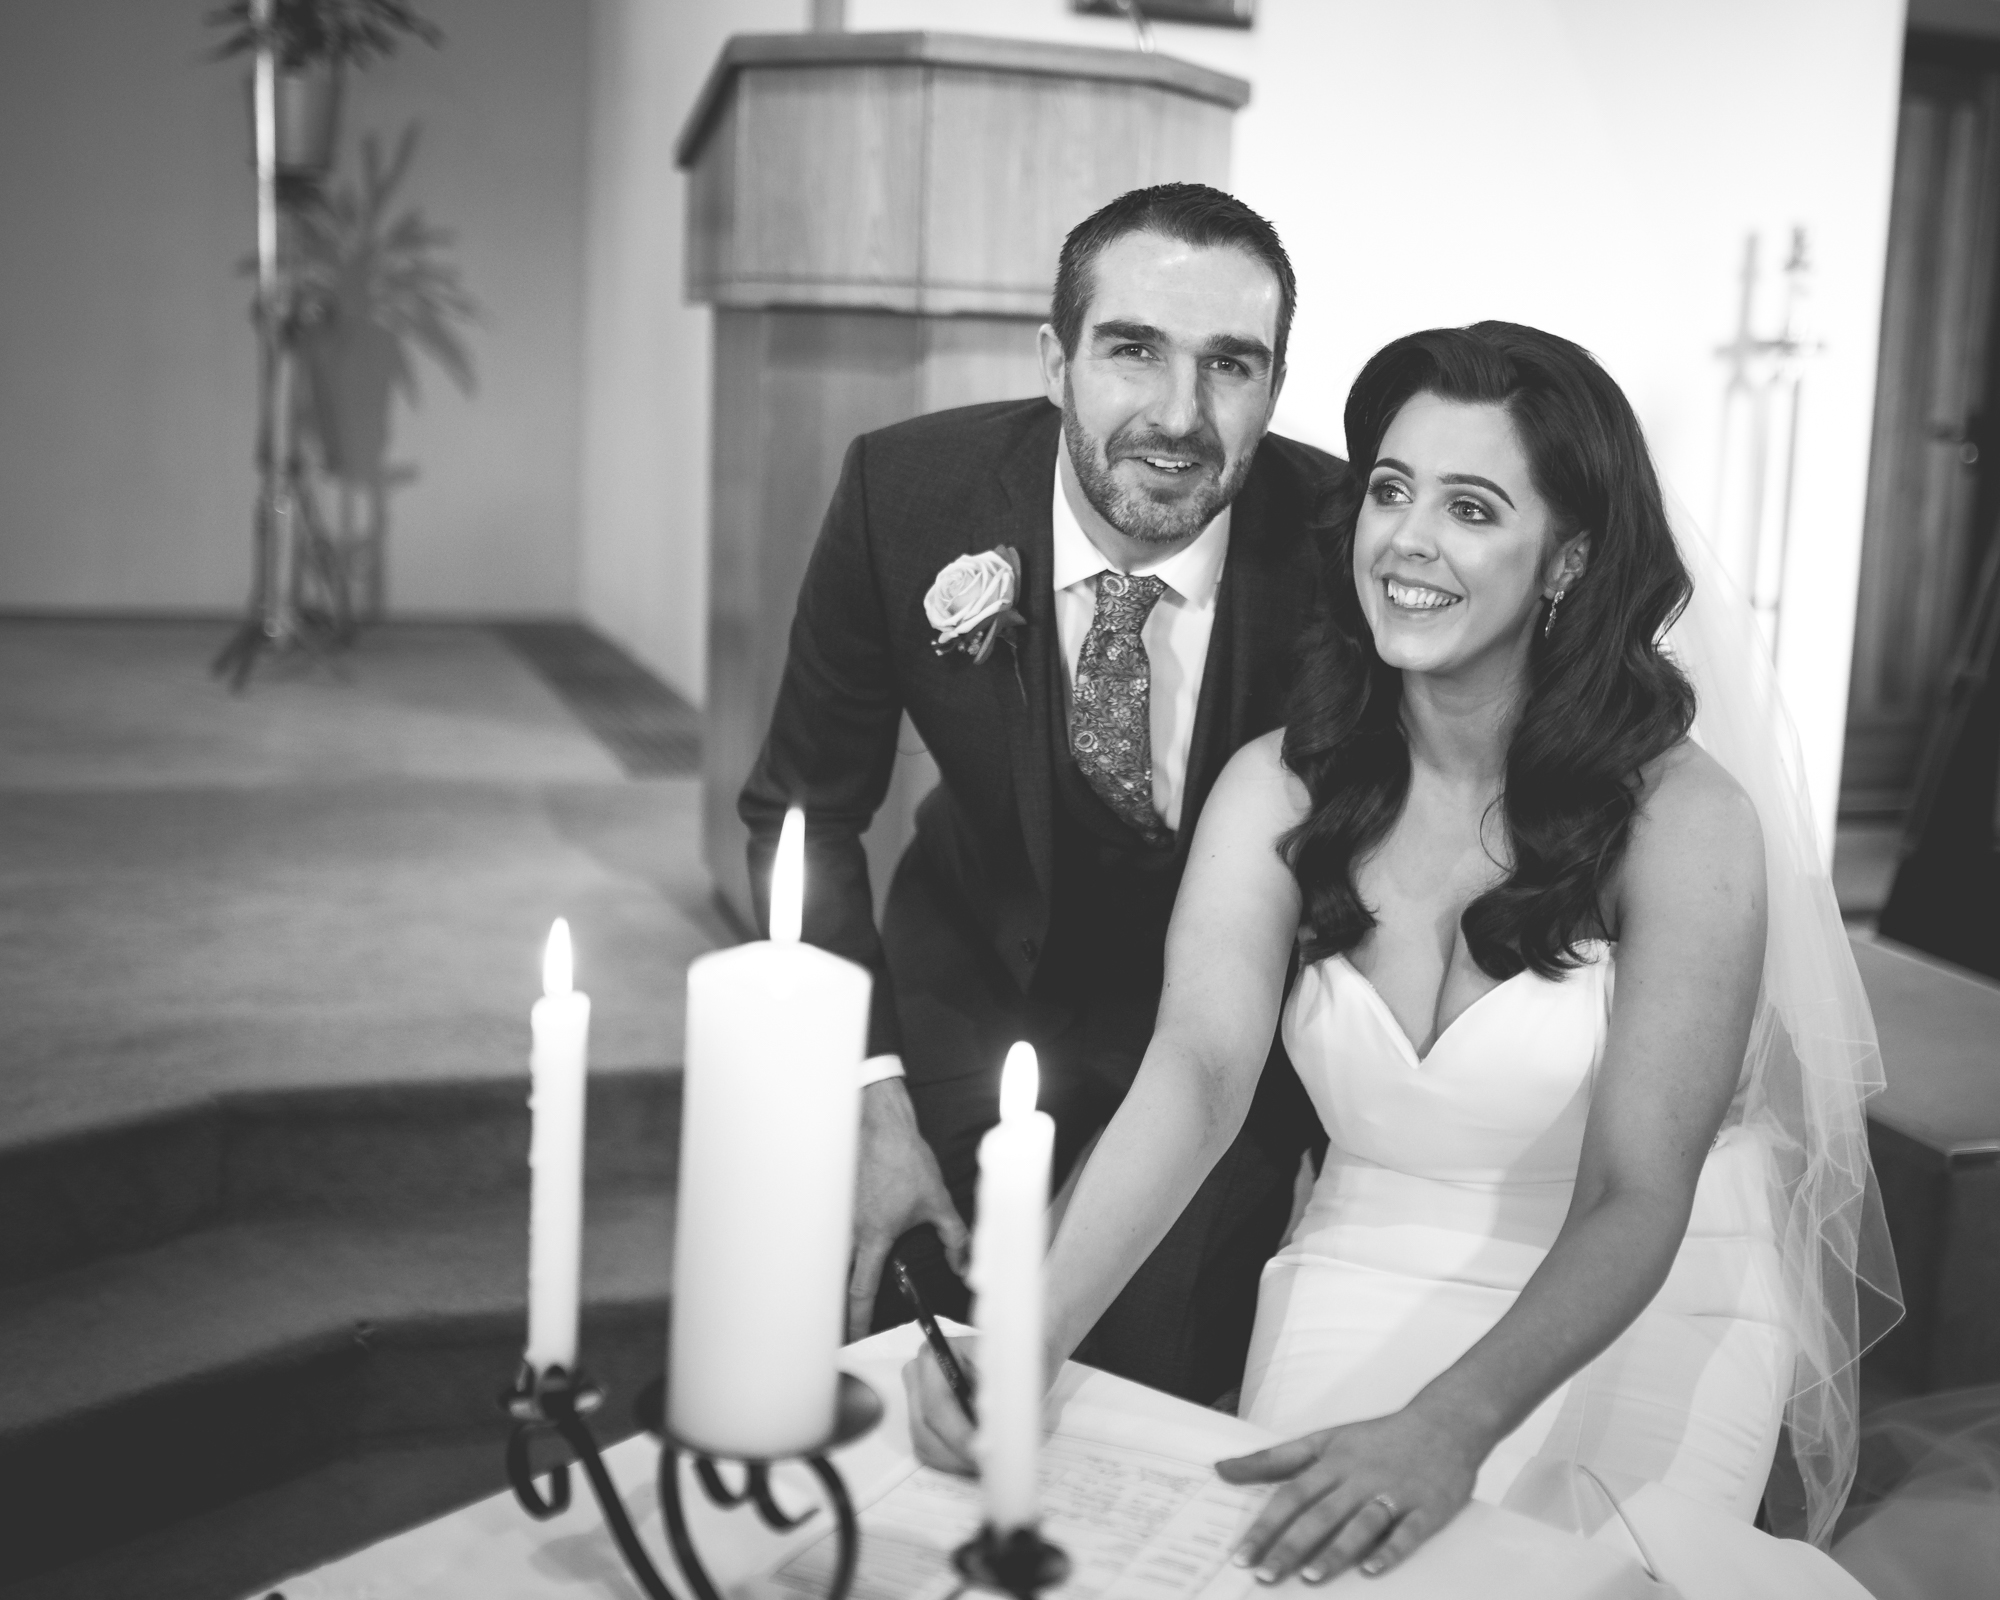 Francis&Oonagh-Ceremony-85.jpg